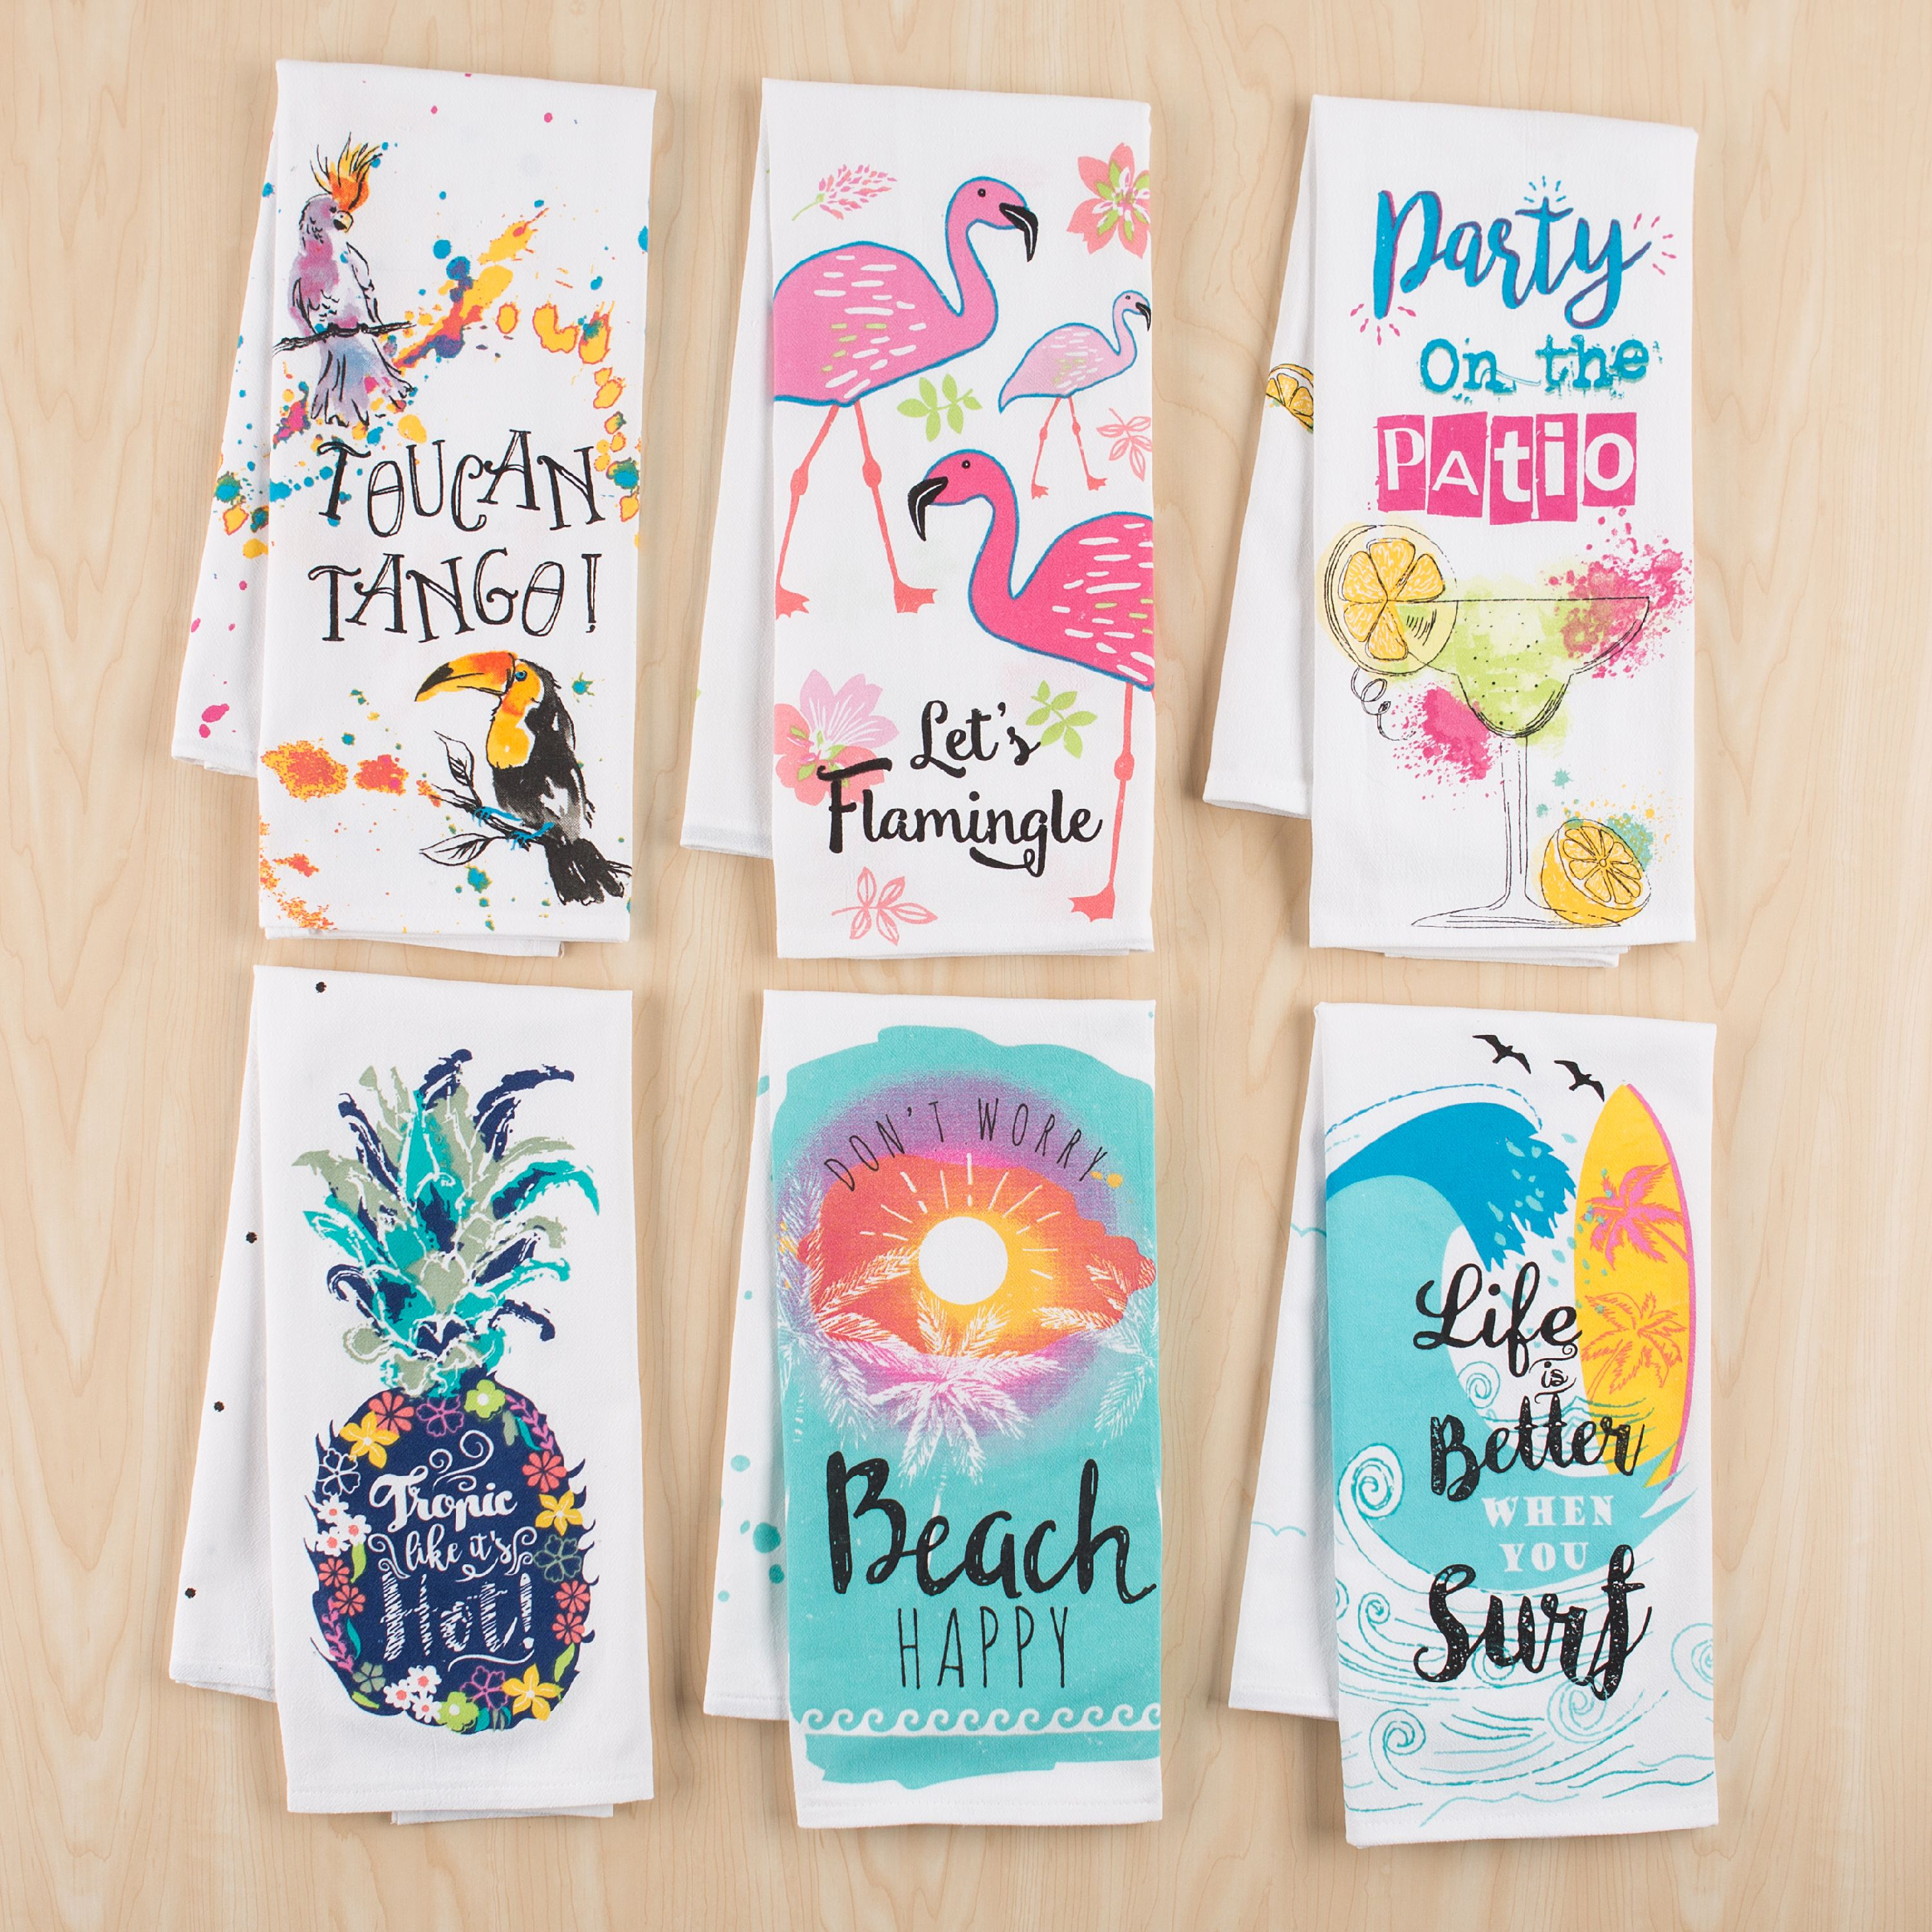 Mainstays Summer Flour Sack Kitchen Towel, Set of 6, Assorted Prints, 28 in x 29 in, 100%... by JVS Export